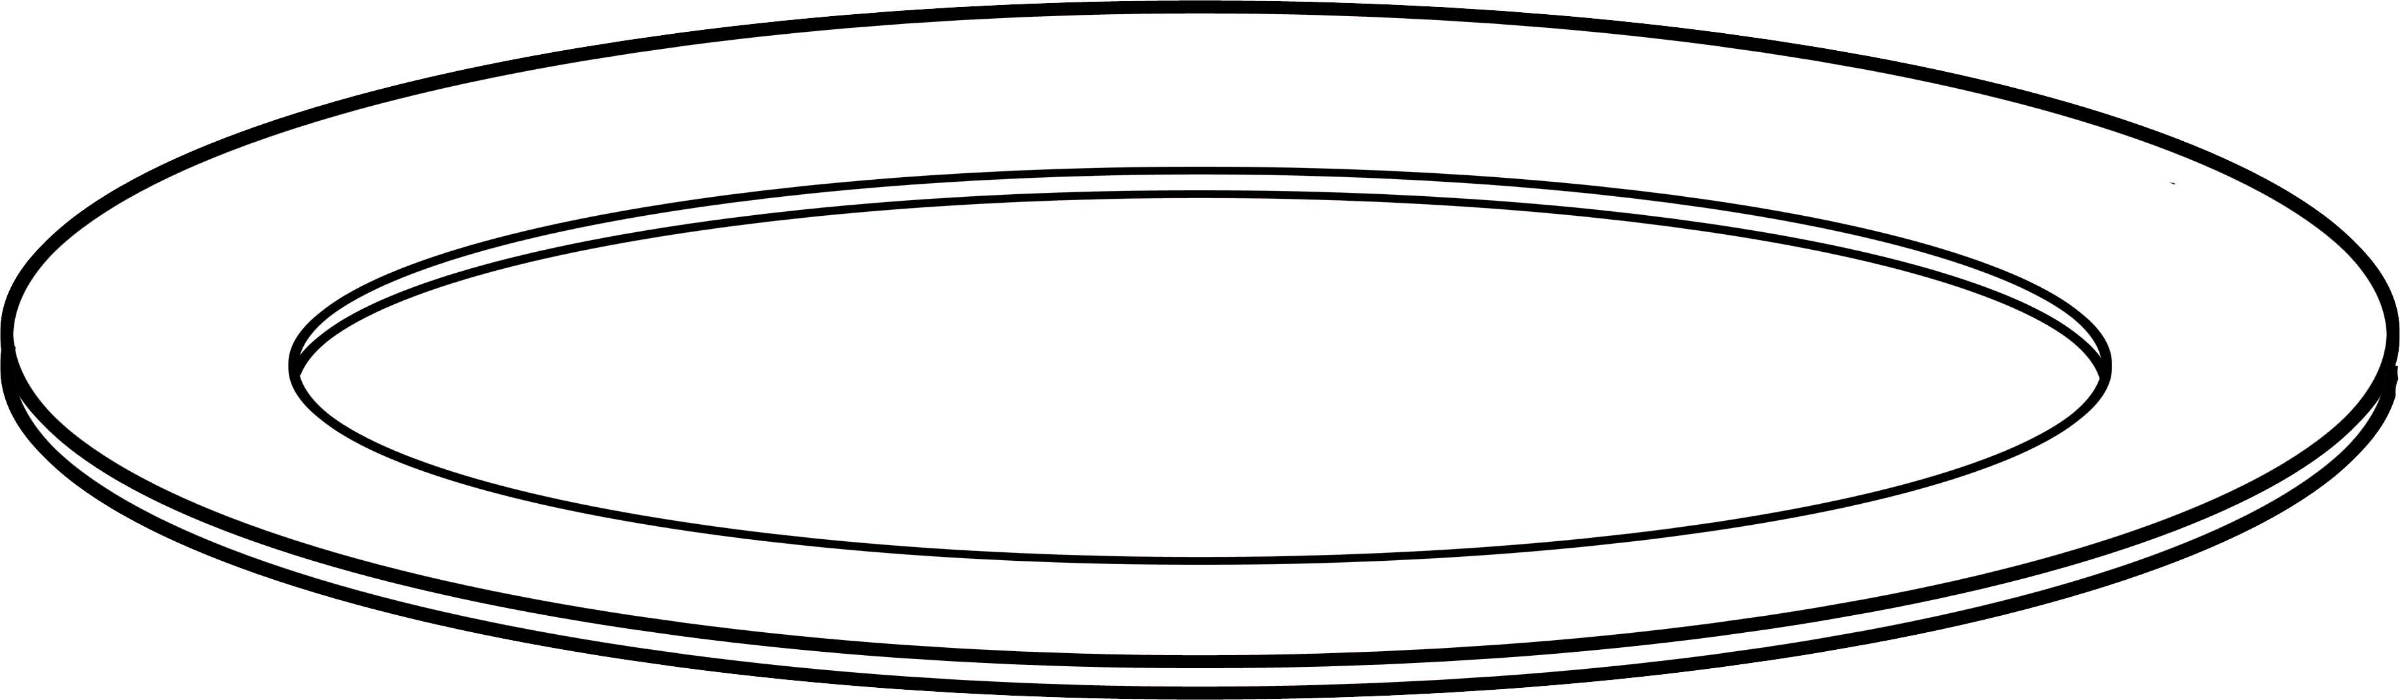 Clipart - Plate: https://openclipart.org/detail/234348/plate